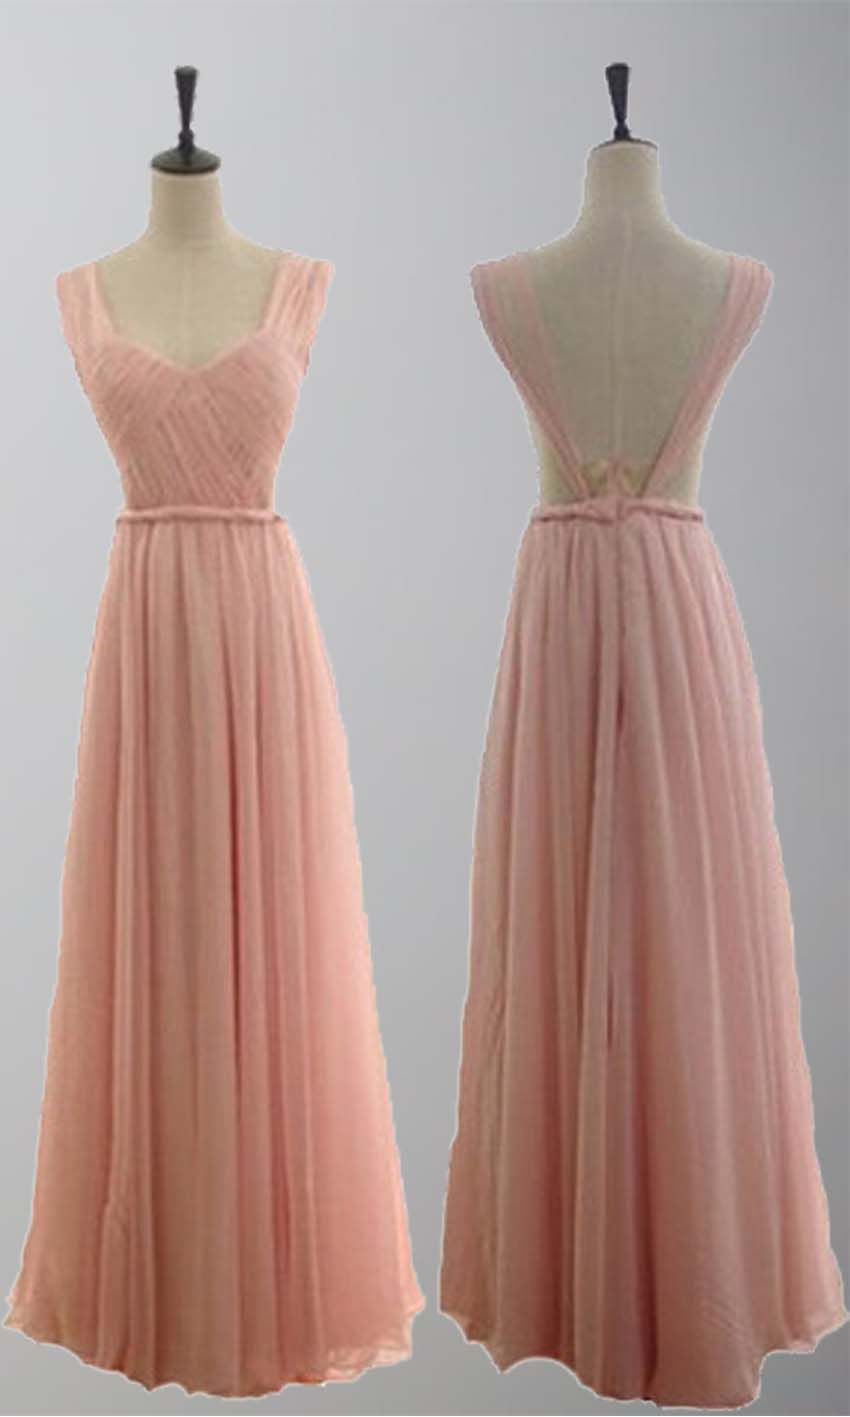 Pink Backless Long Chiffon Sexy Evening Dresses KSP274 [KSP274] - £89.00 : Cheap Prom Dresses Uk, Bridesmaid Dresses, 2014 Prom & Evening Dresses, Look for cheap elegant prom dresses 2014, cocktail gowns, or dresses for special occasions? kissprom.co.uk offers various bridesmaid dresses, evening dress, free shipping to UK etc.